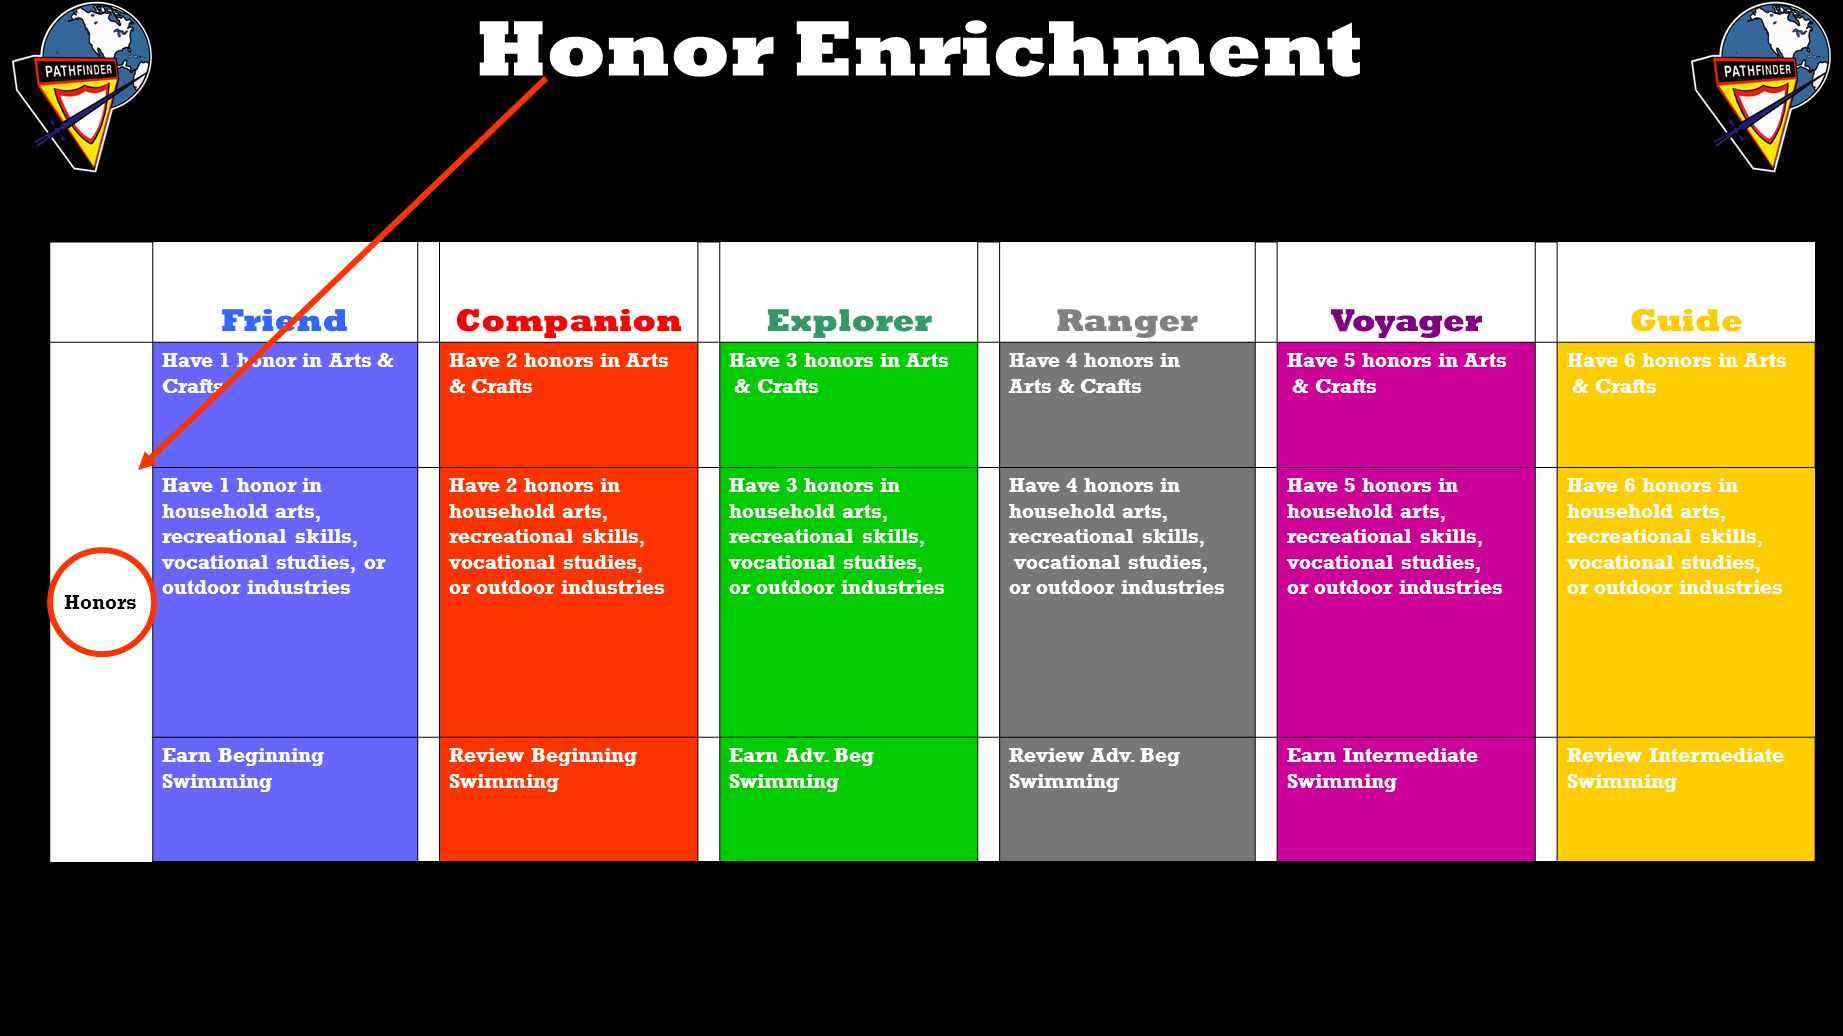 Honor Enrichment Friend Companion Explorer Ranger Voyager Guide Honors Have 1 honor in Arts & Crafts Have 2 honors in Arts & Crafts Have 3 honors in A